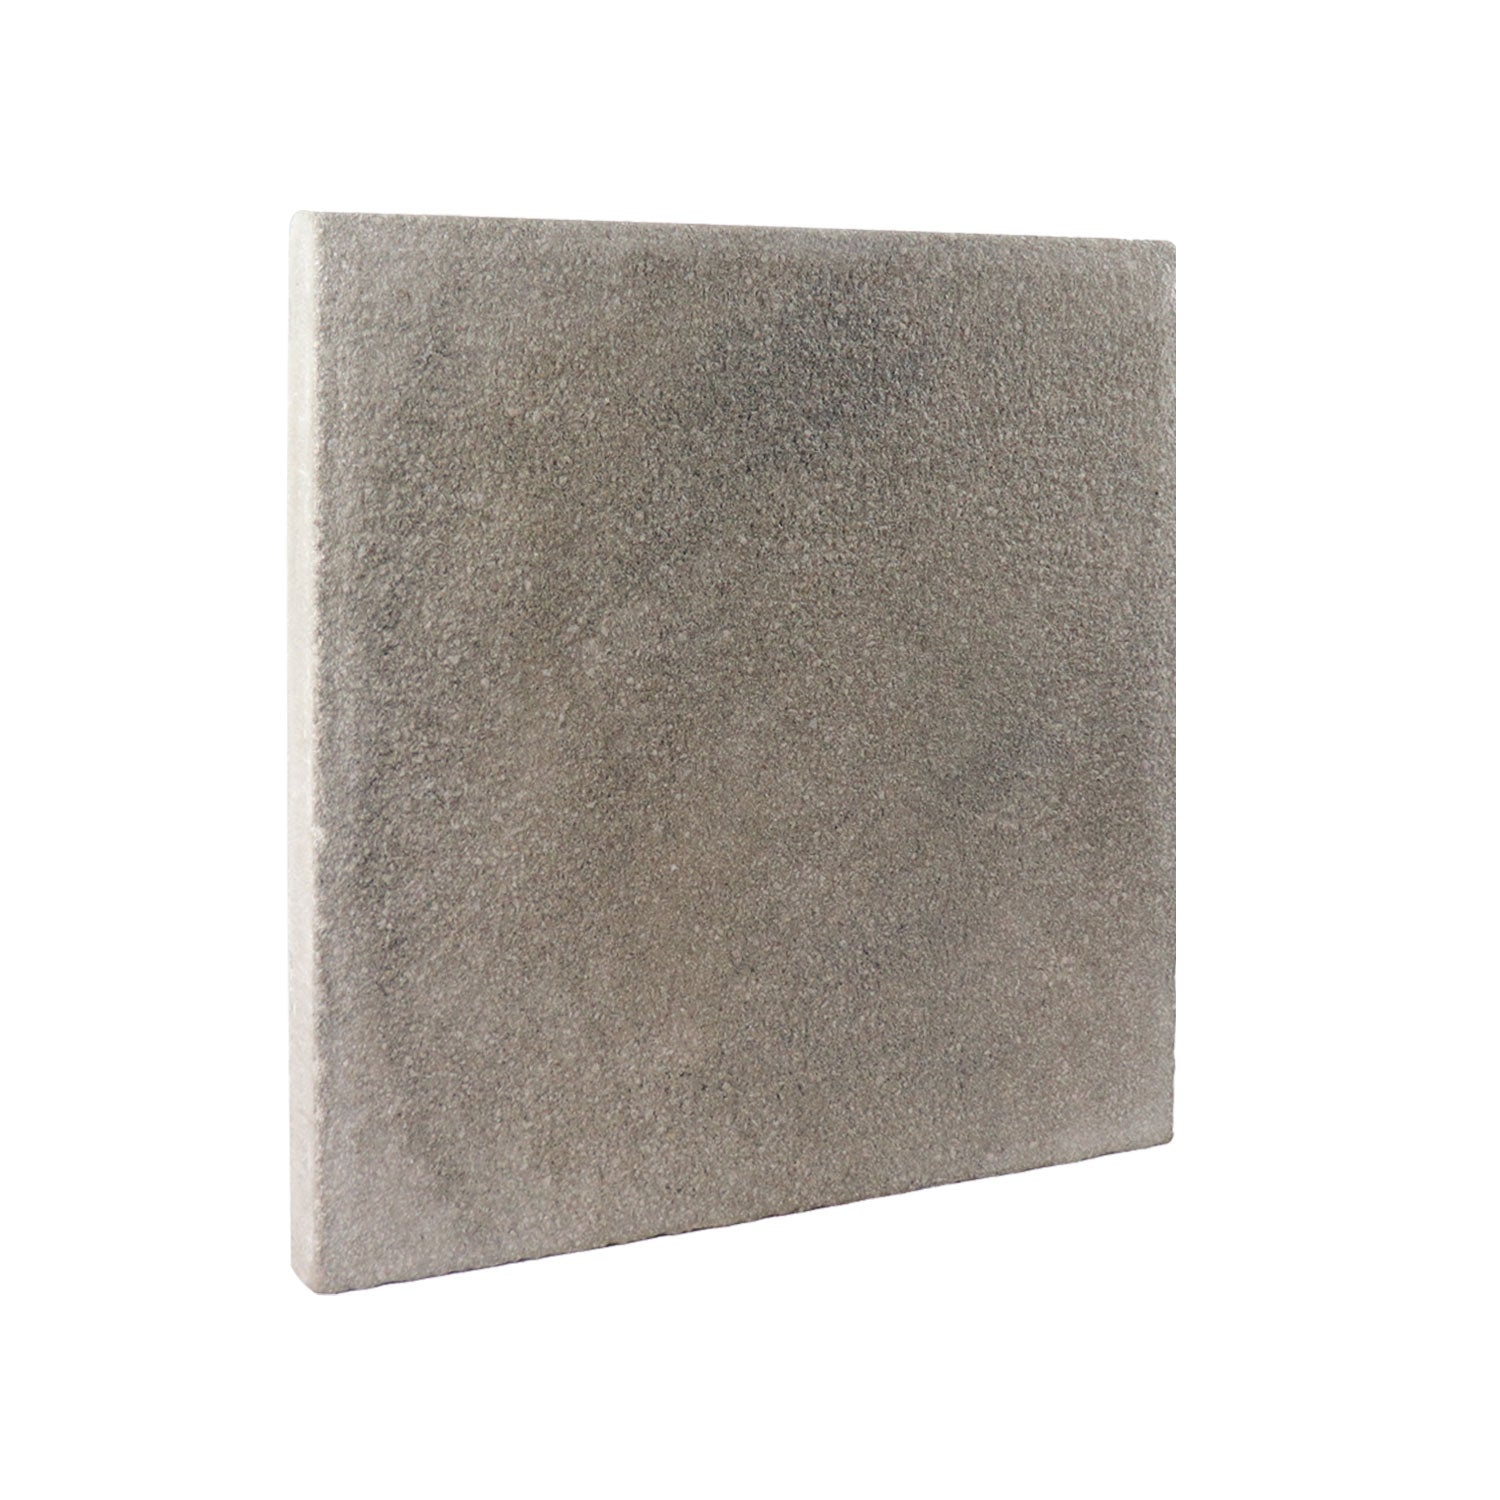 Textured Slab Grey 600mm x 600mm